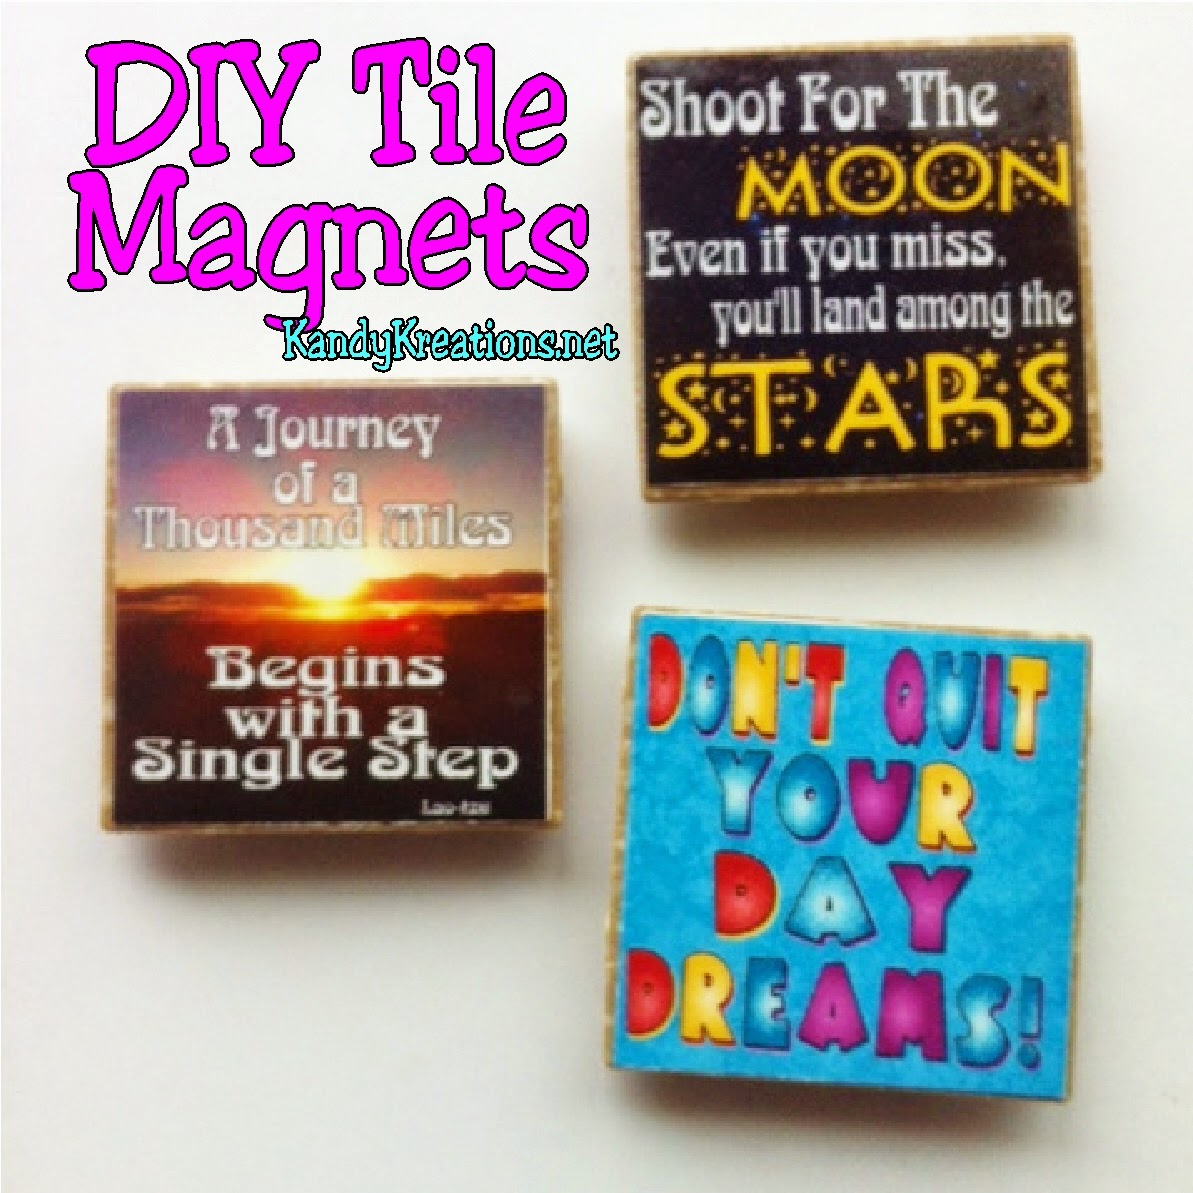 Make your own DIY Tile Magnets in just a few minutes. You can use your favorite quote or instagram pictures for personalized magents for your home.